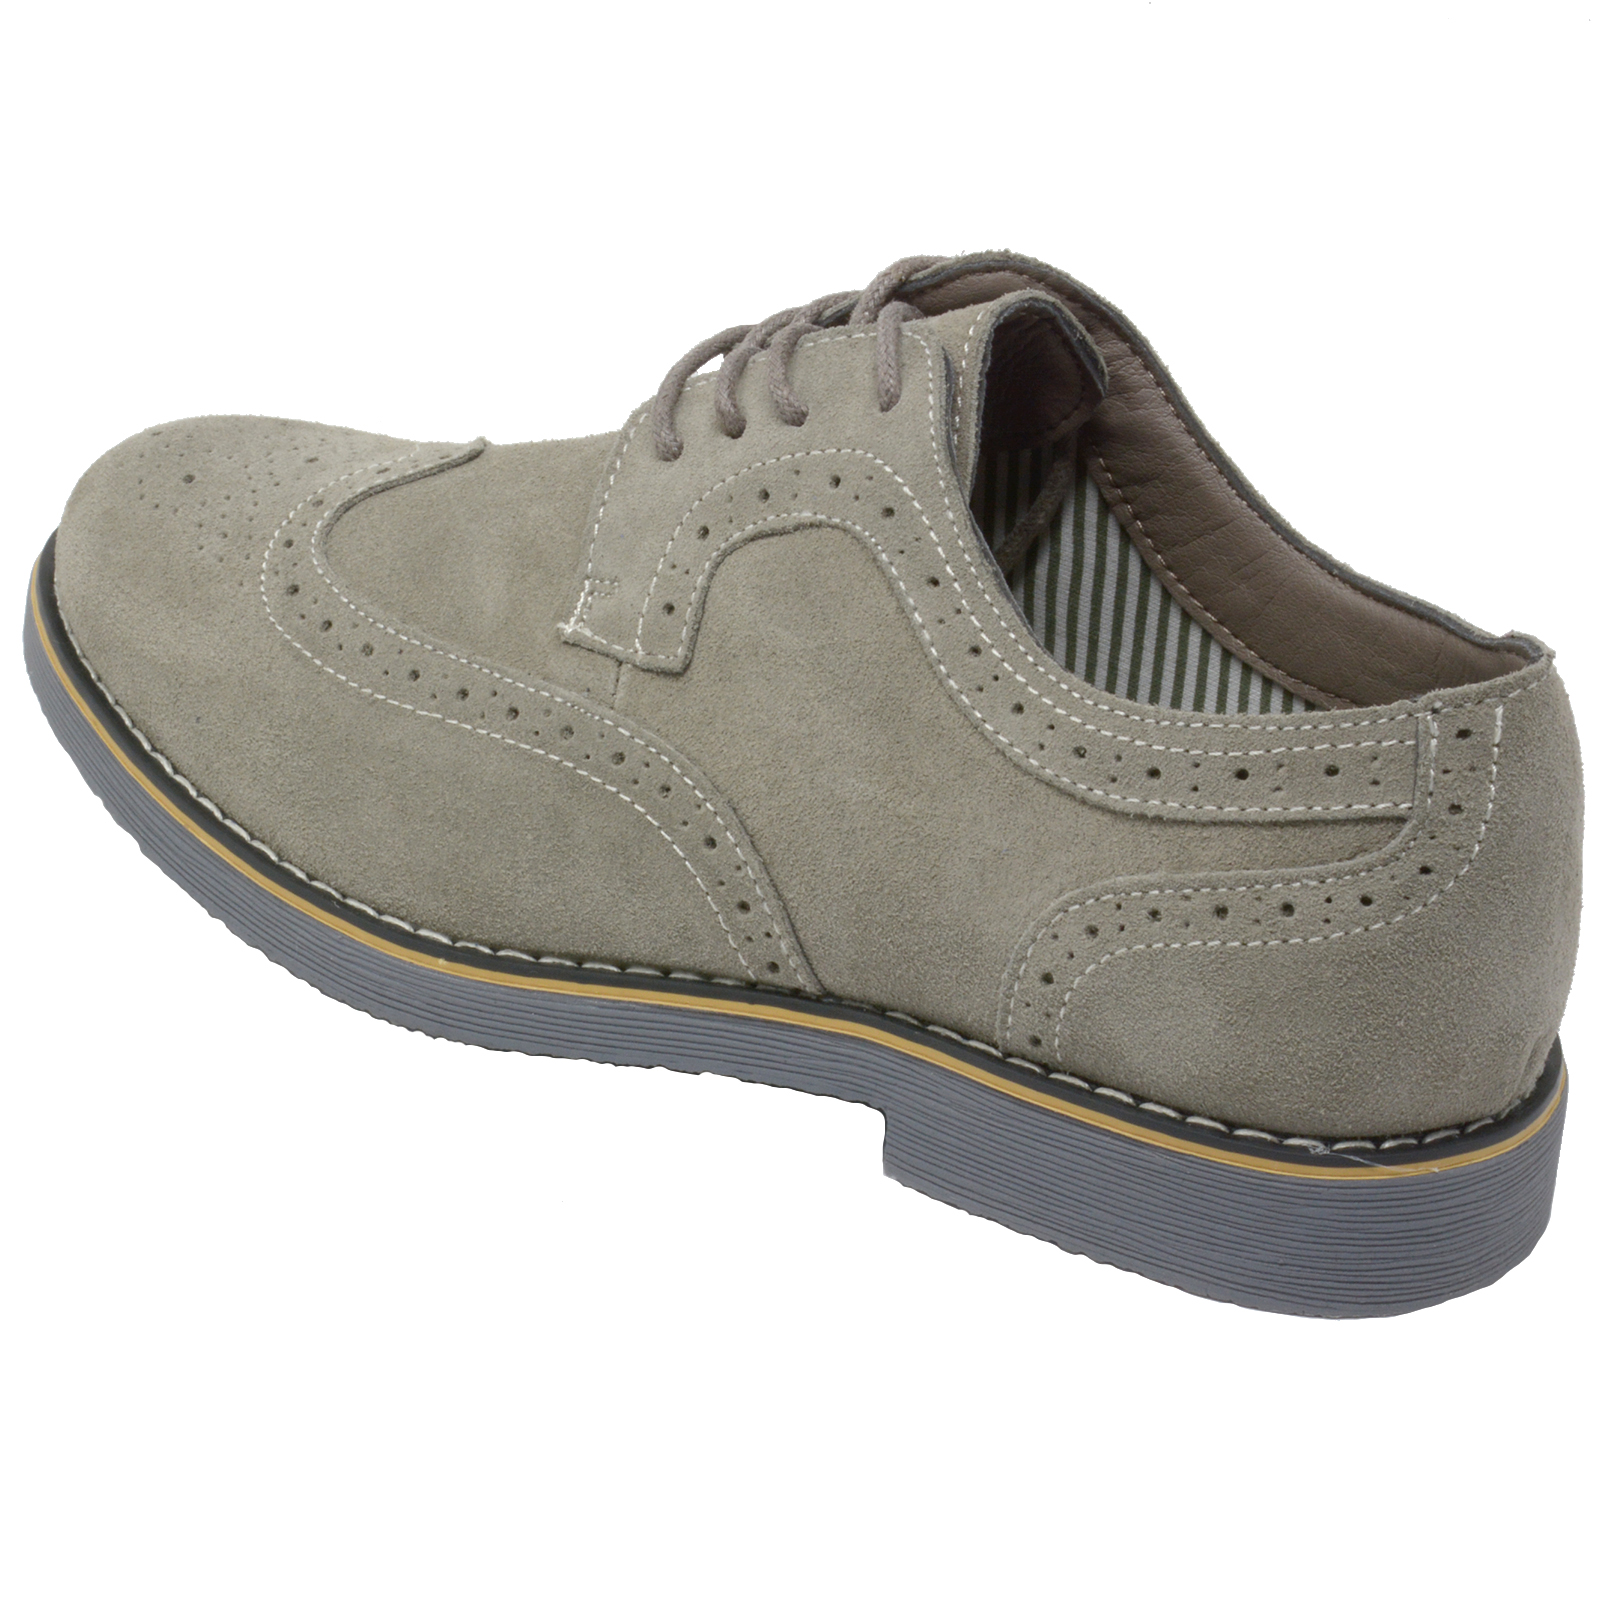 Alpine-Swiss-Beau-Mens-Dress-Shoes-Genuine-Suede-Wing-Tip-Brogue-Lace-Up-Oxfords thumbnail 20